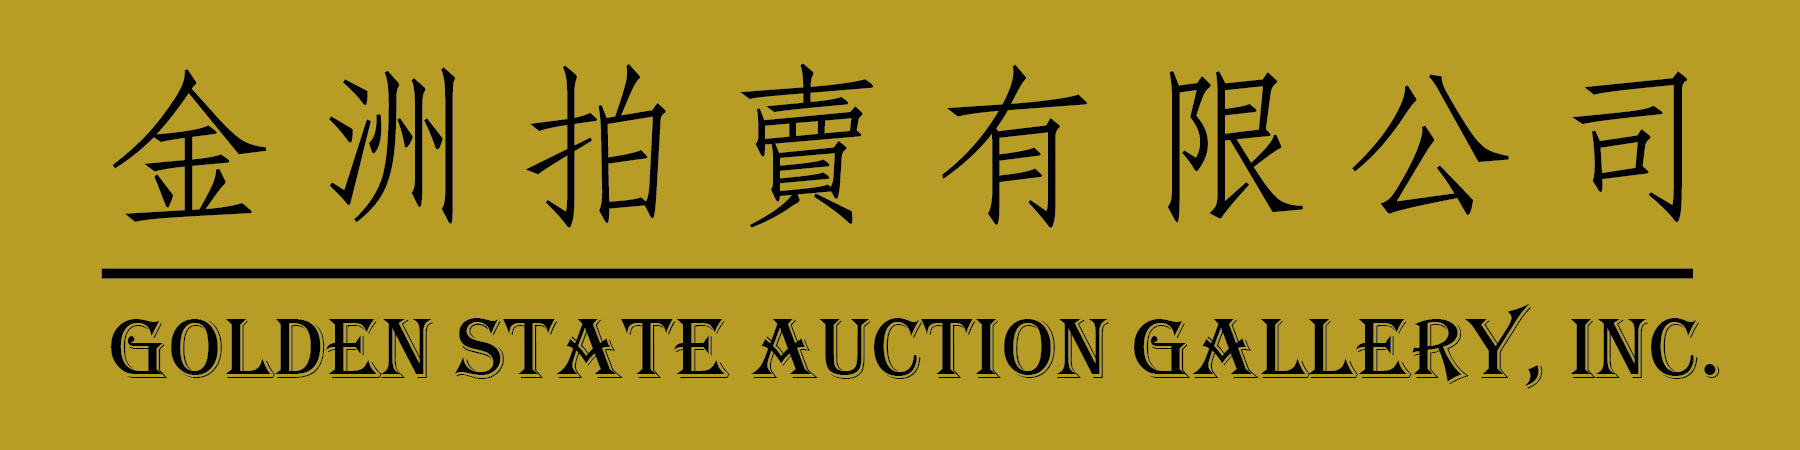 RL Auctioneers